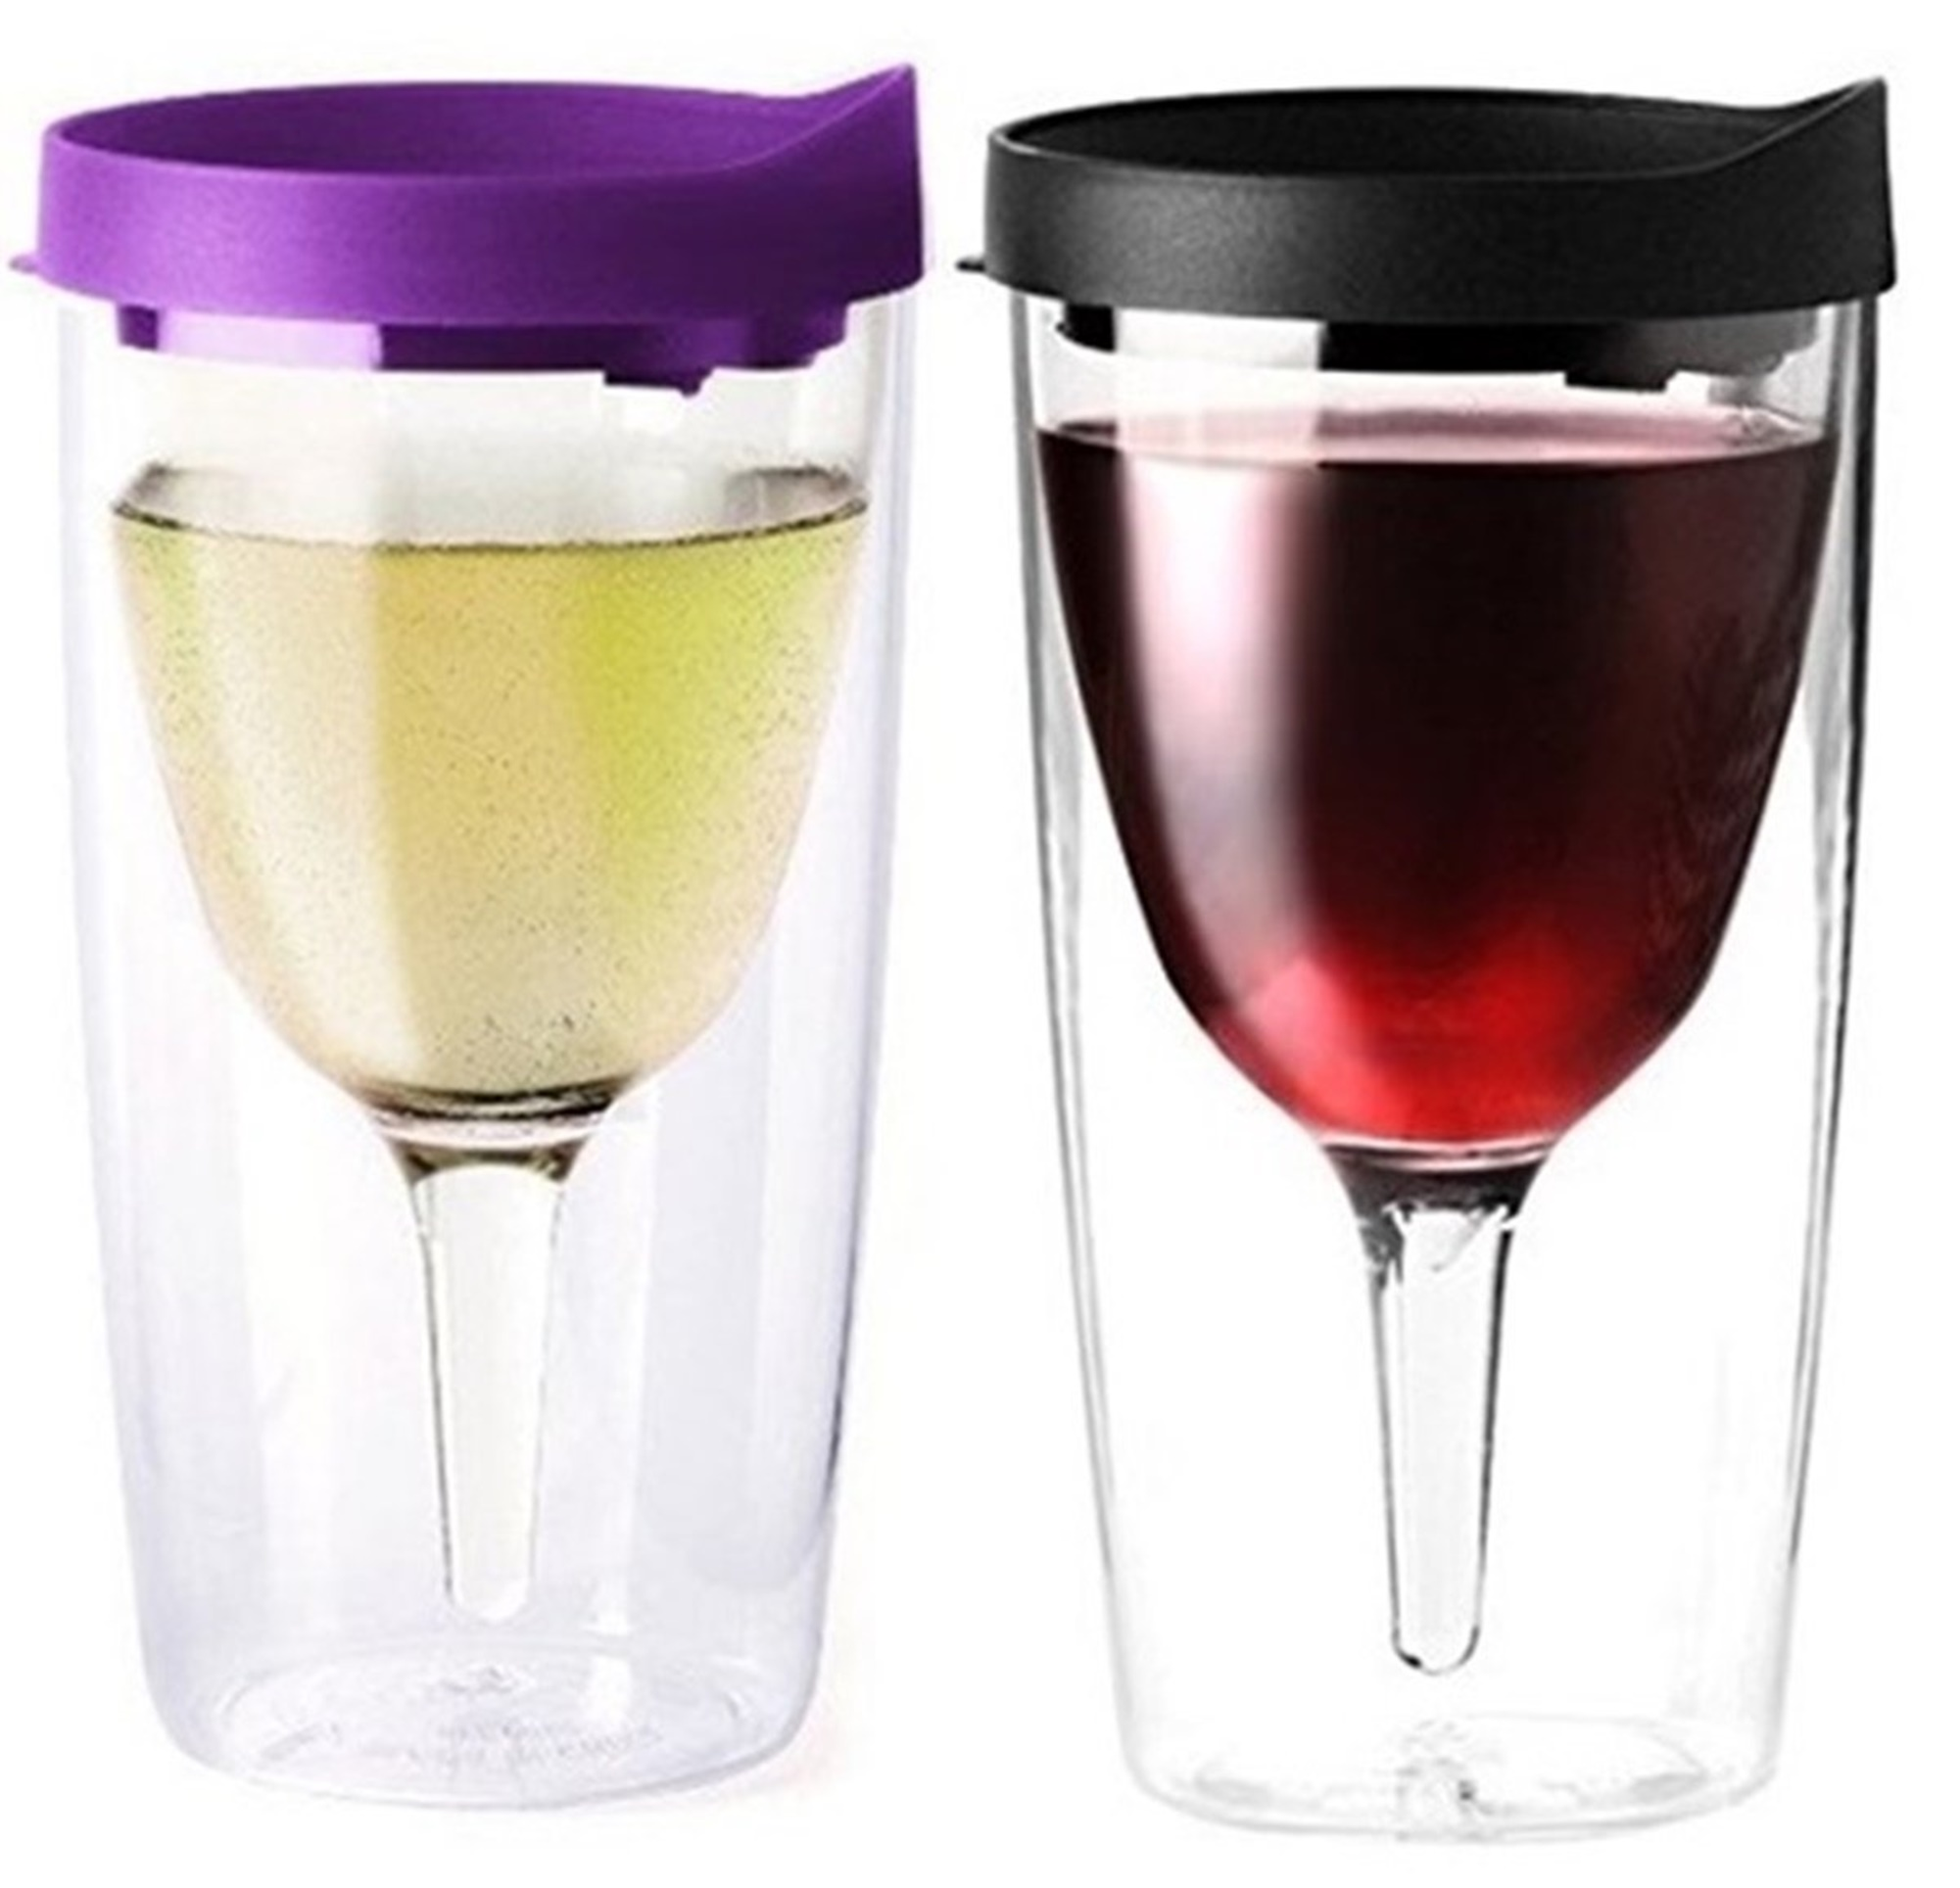 Vino2Go Double Wall Insulated Acrylic Wine Cup Tumbler with Purple and Black Slide Top Lid, 10 oz, Pack of 2